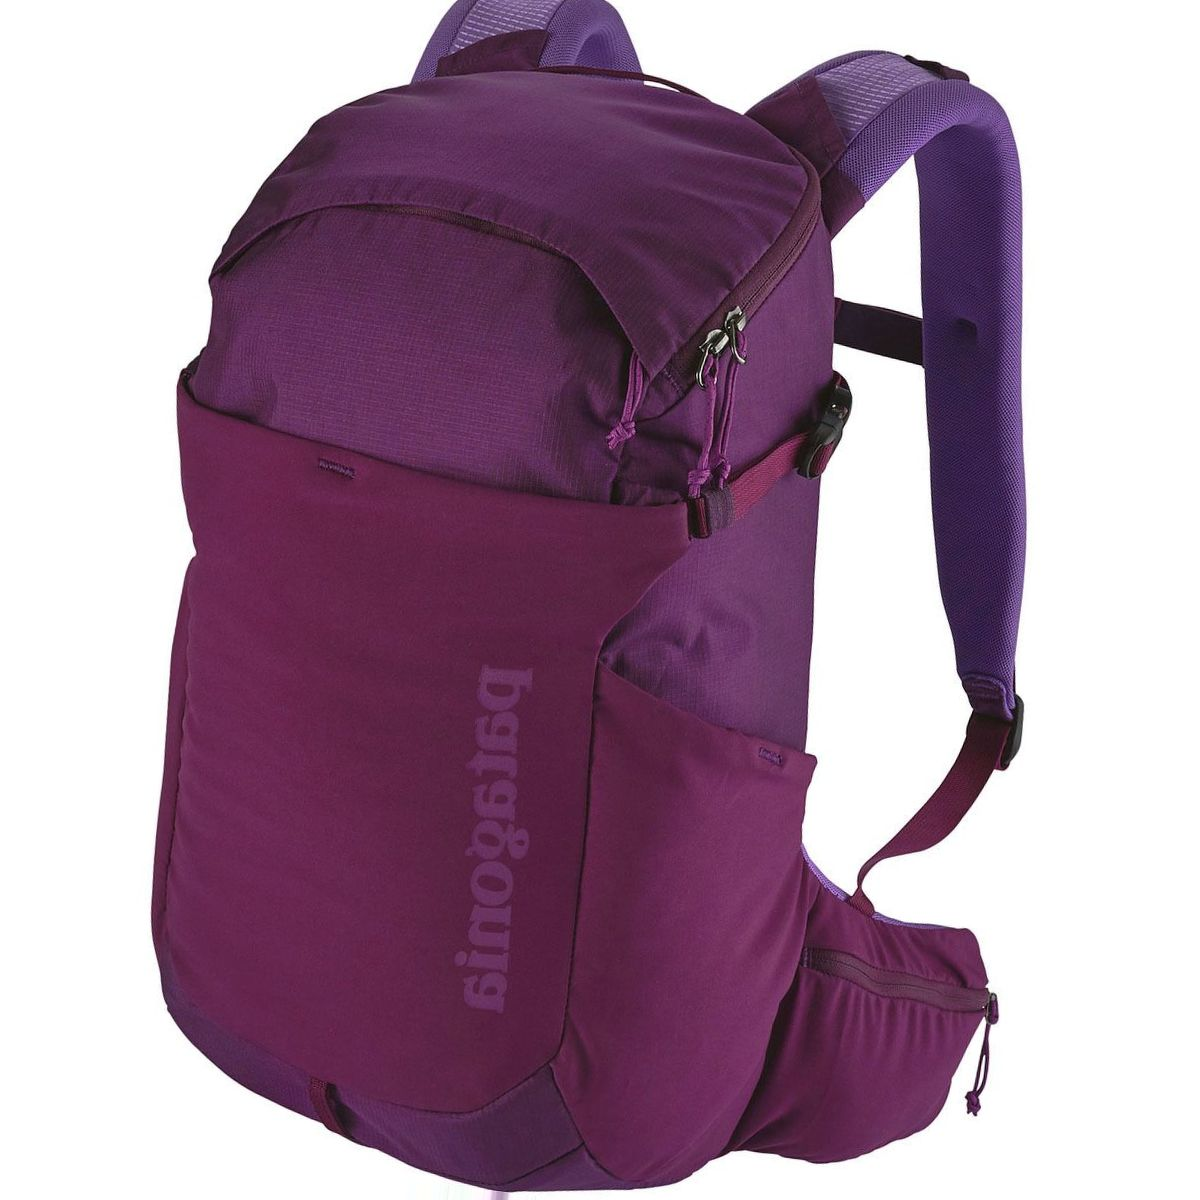 Patagonia Nine Trails 18L Backpack - Women's